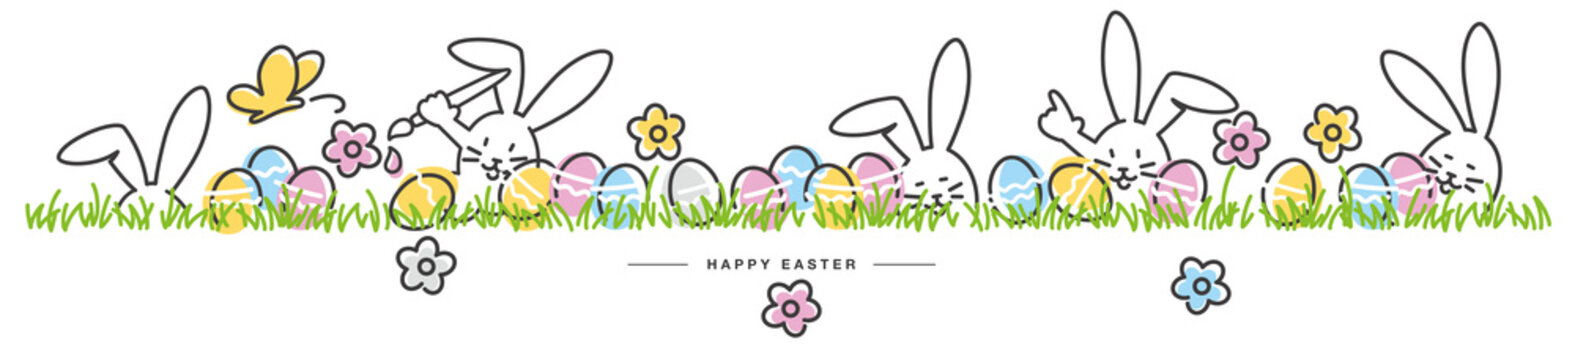 Happy Easter egg hunt handwritten art line design of cute smiling Easter bunnies with flowers and eggs in grass on white isolated background great for Easter Cards, banner, textiles, wallpapers